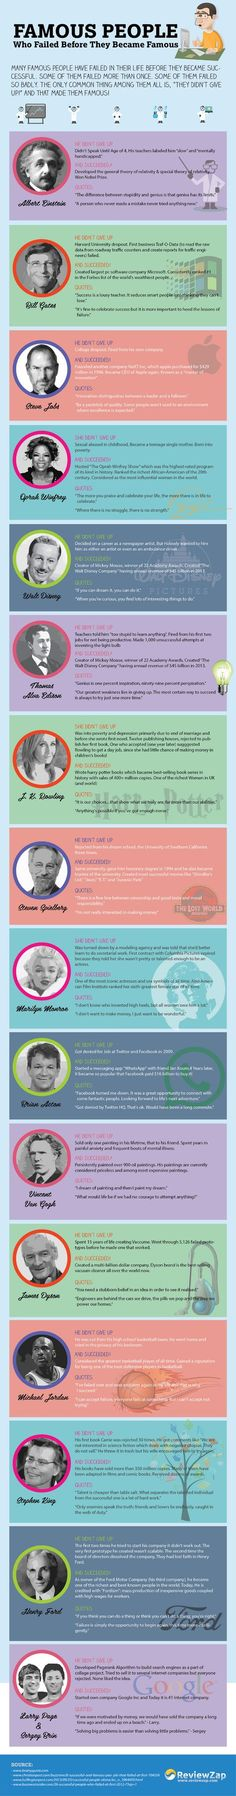 12 Famous People Who Failed Before Succeeding | Wanderlust ...